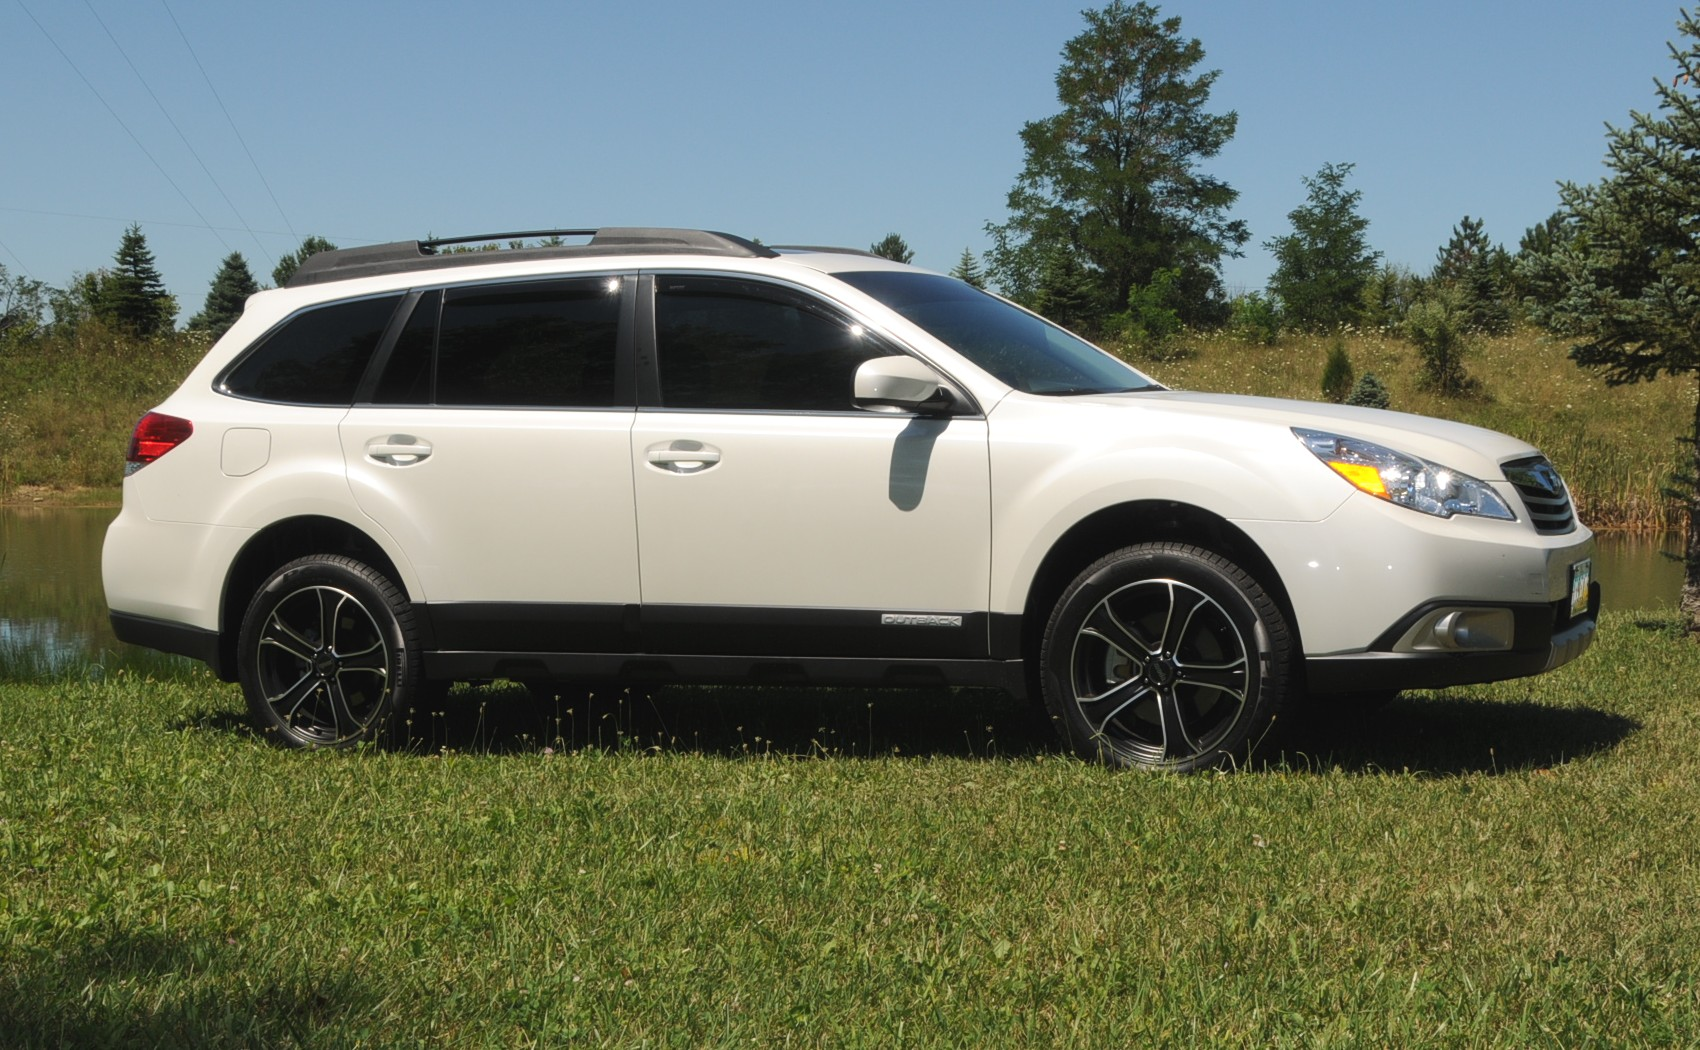 Subaru Outback wheels #4